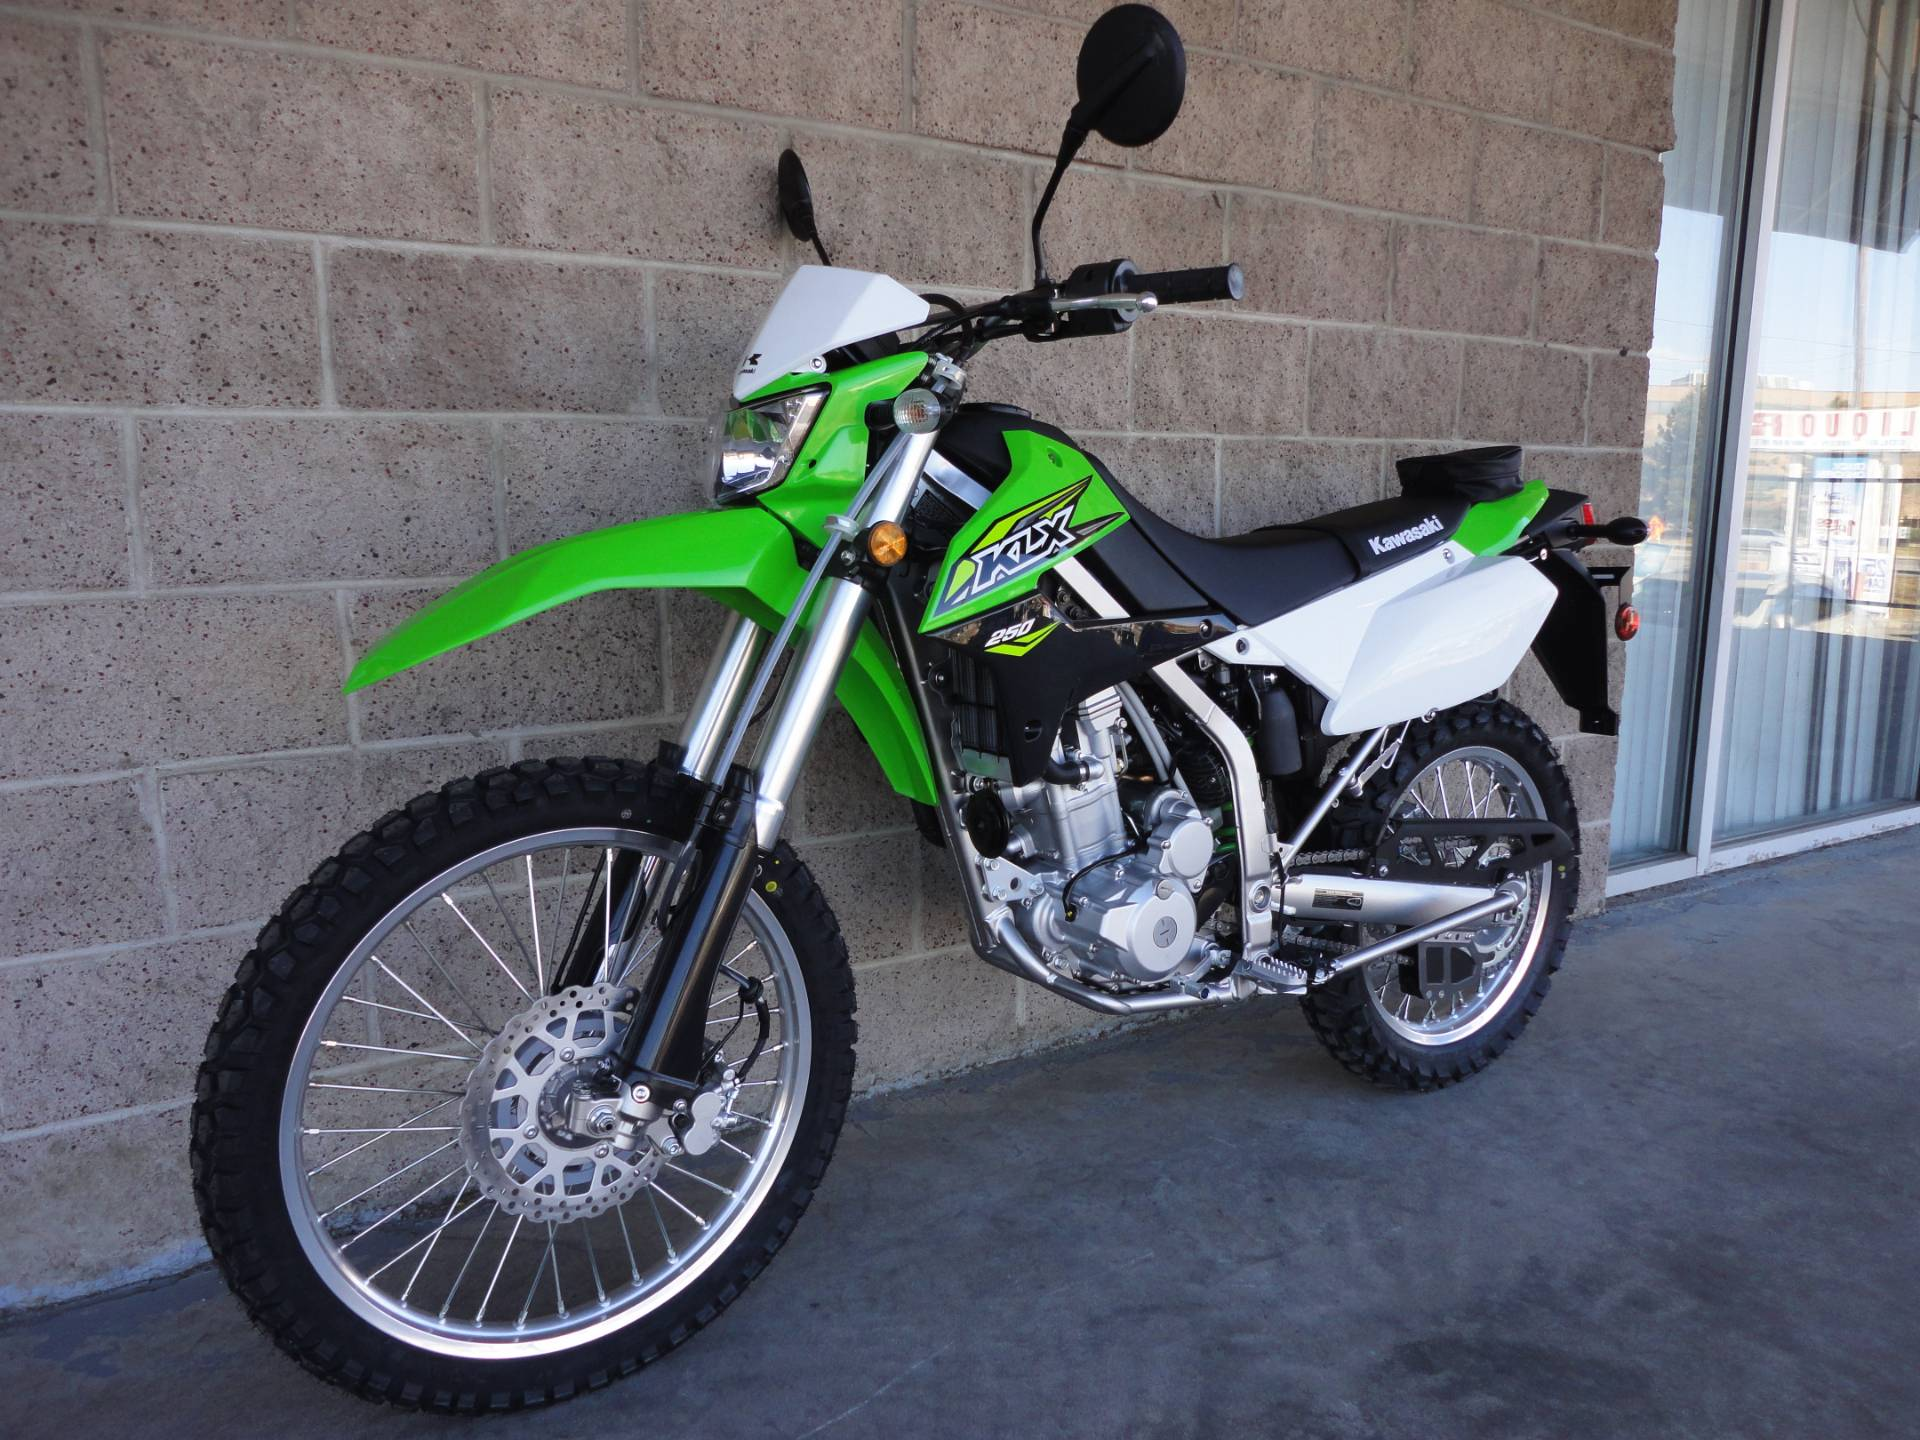 2018 Kawasaki KLX 250 Motorcycles Denver Colorado V6926